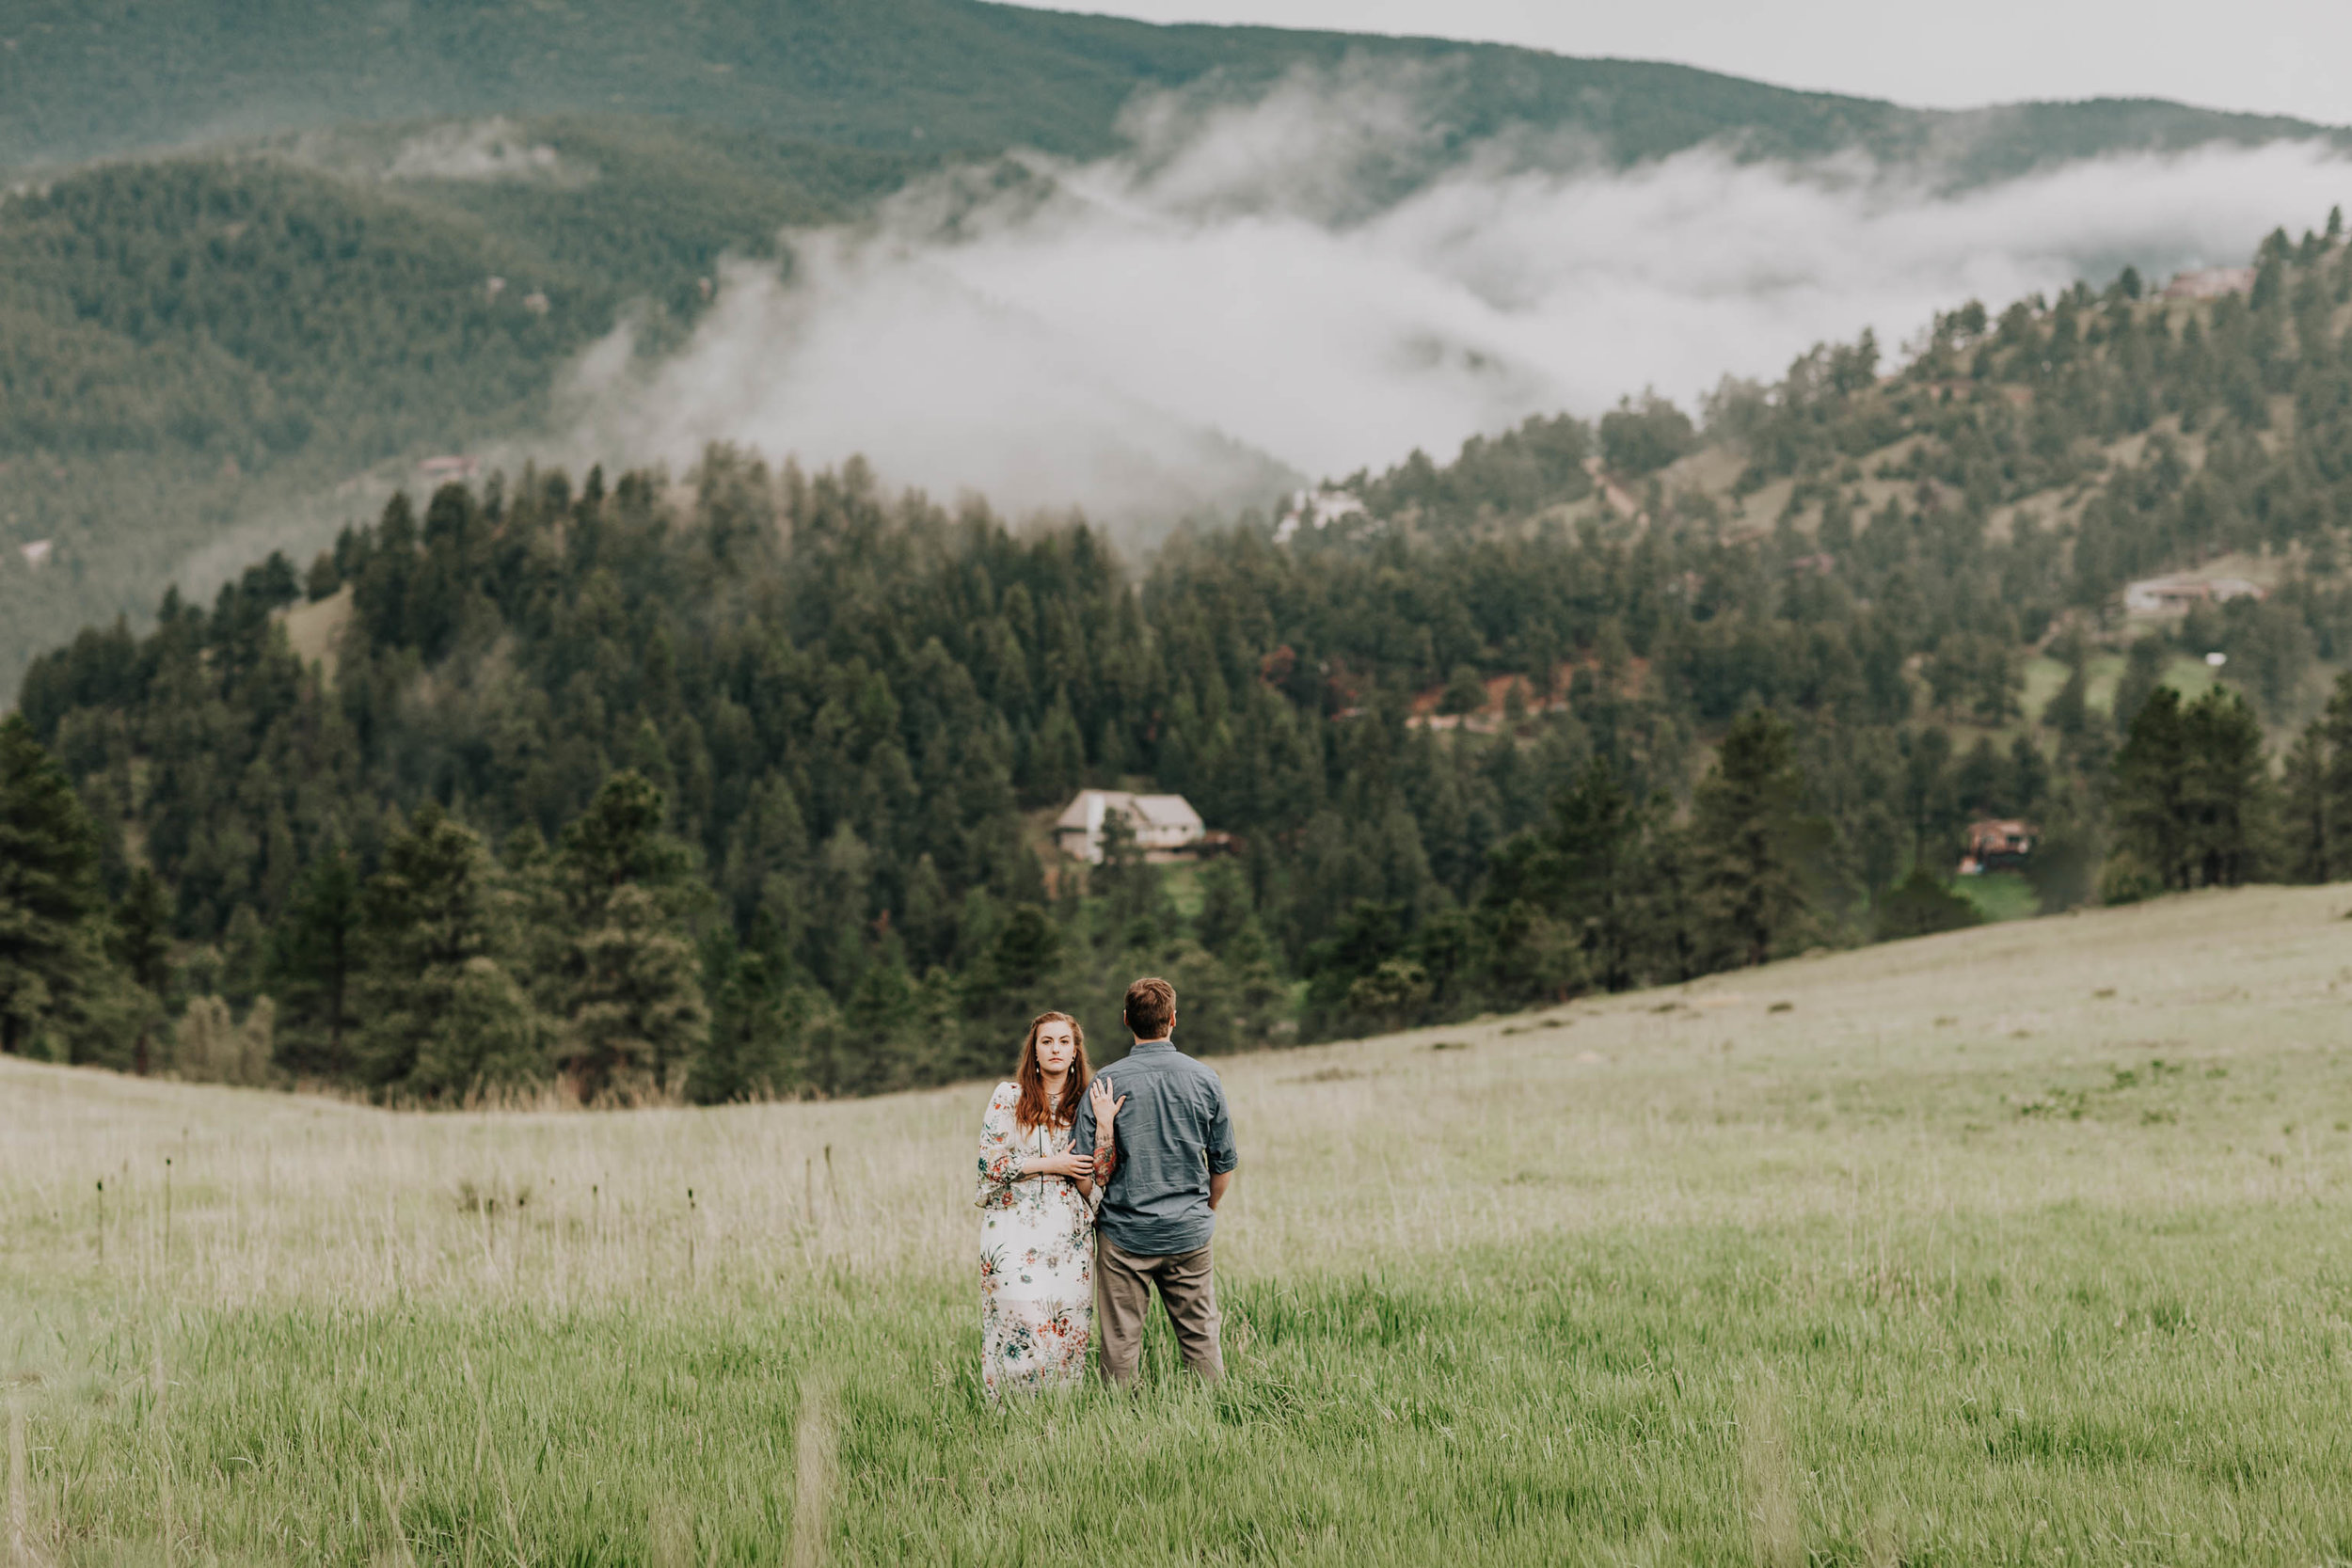 Sheena_Shahangian_Photography_Engagement_Photo_Shoot_Shelby_and_Andrew_Boulder_Colorado-19.jpg